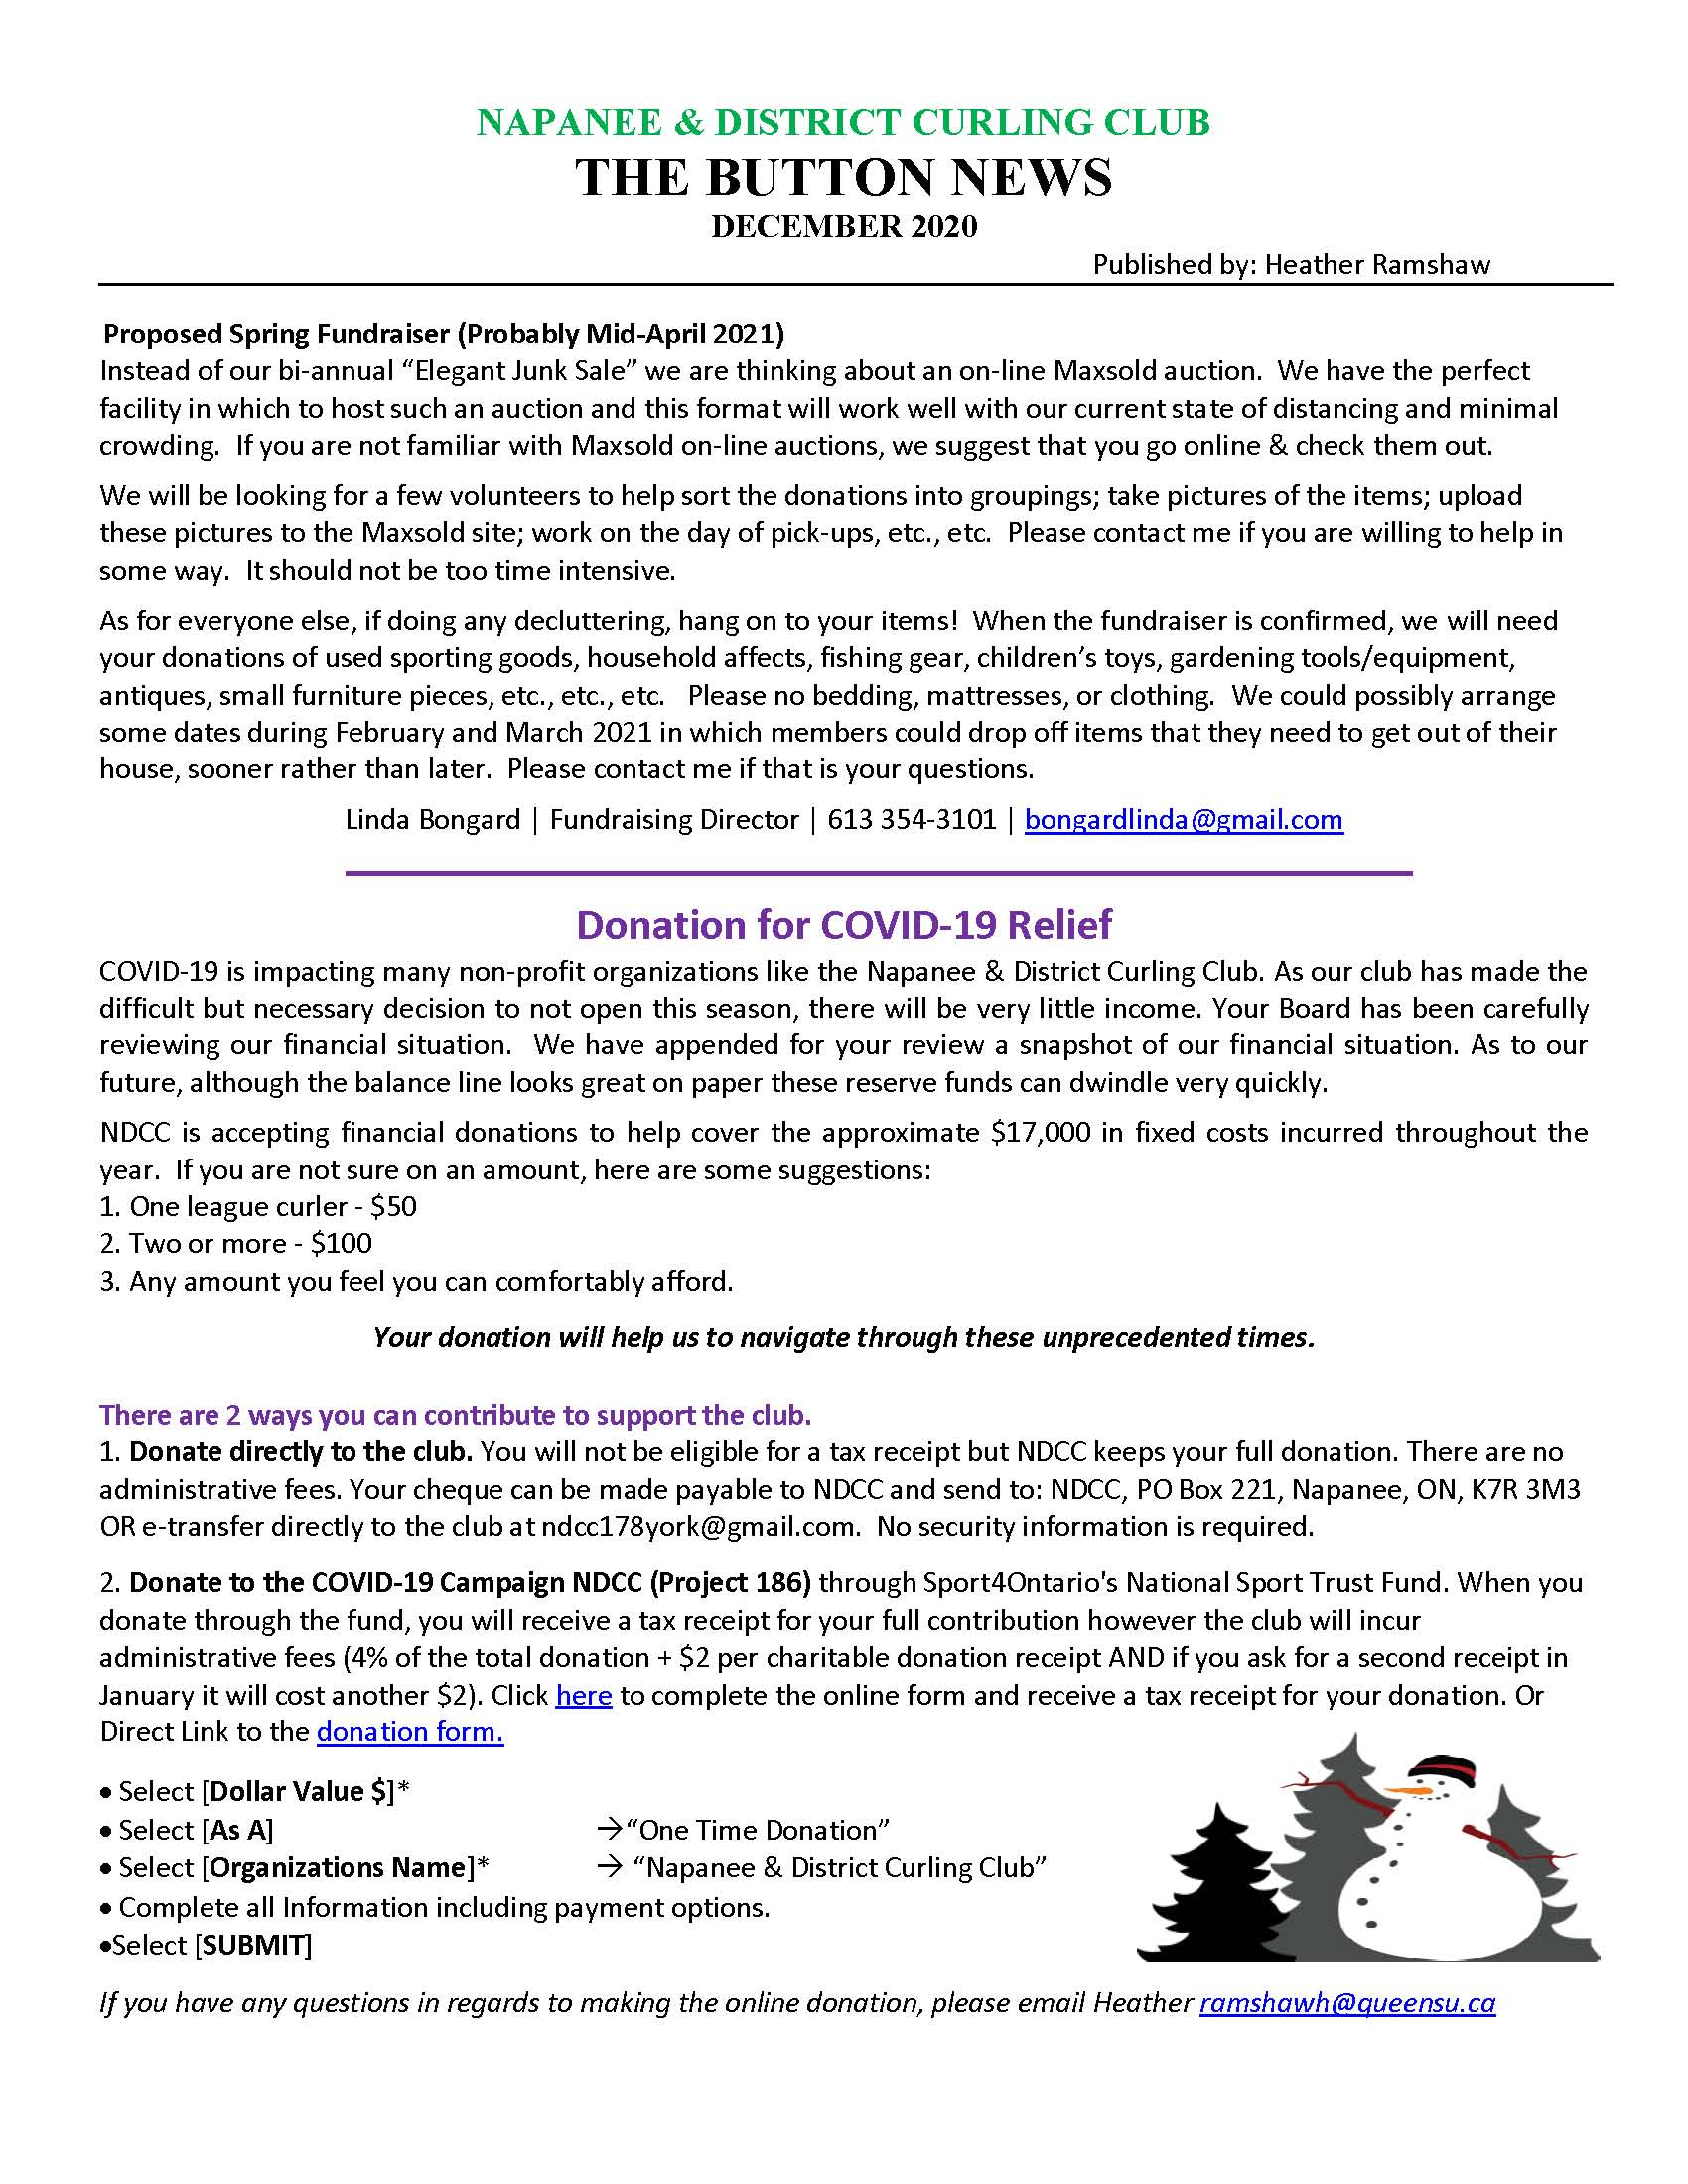 NewsletterDec2020 FINAL Page 2